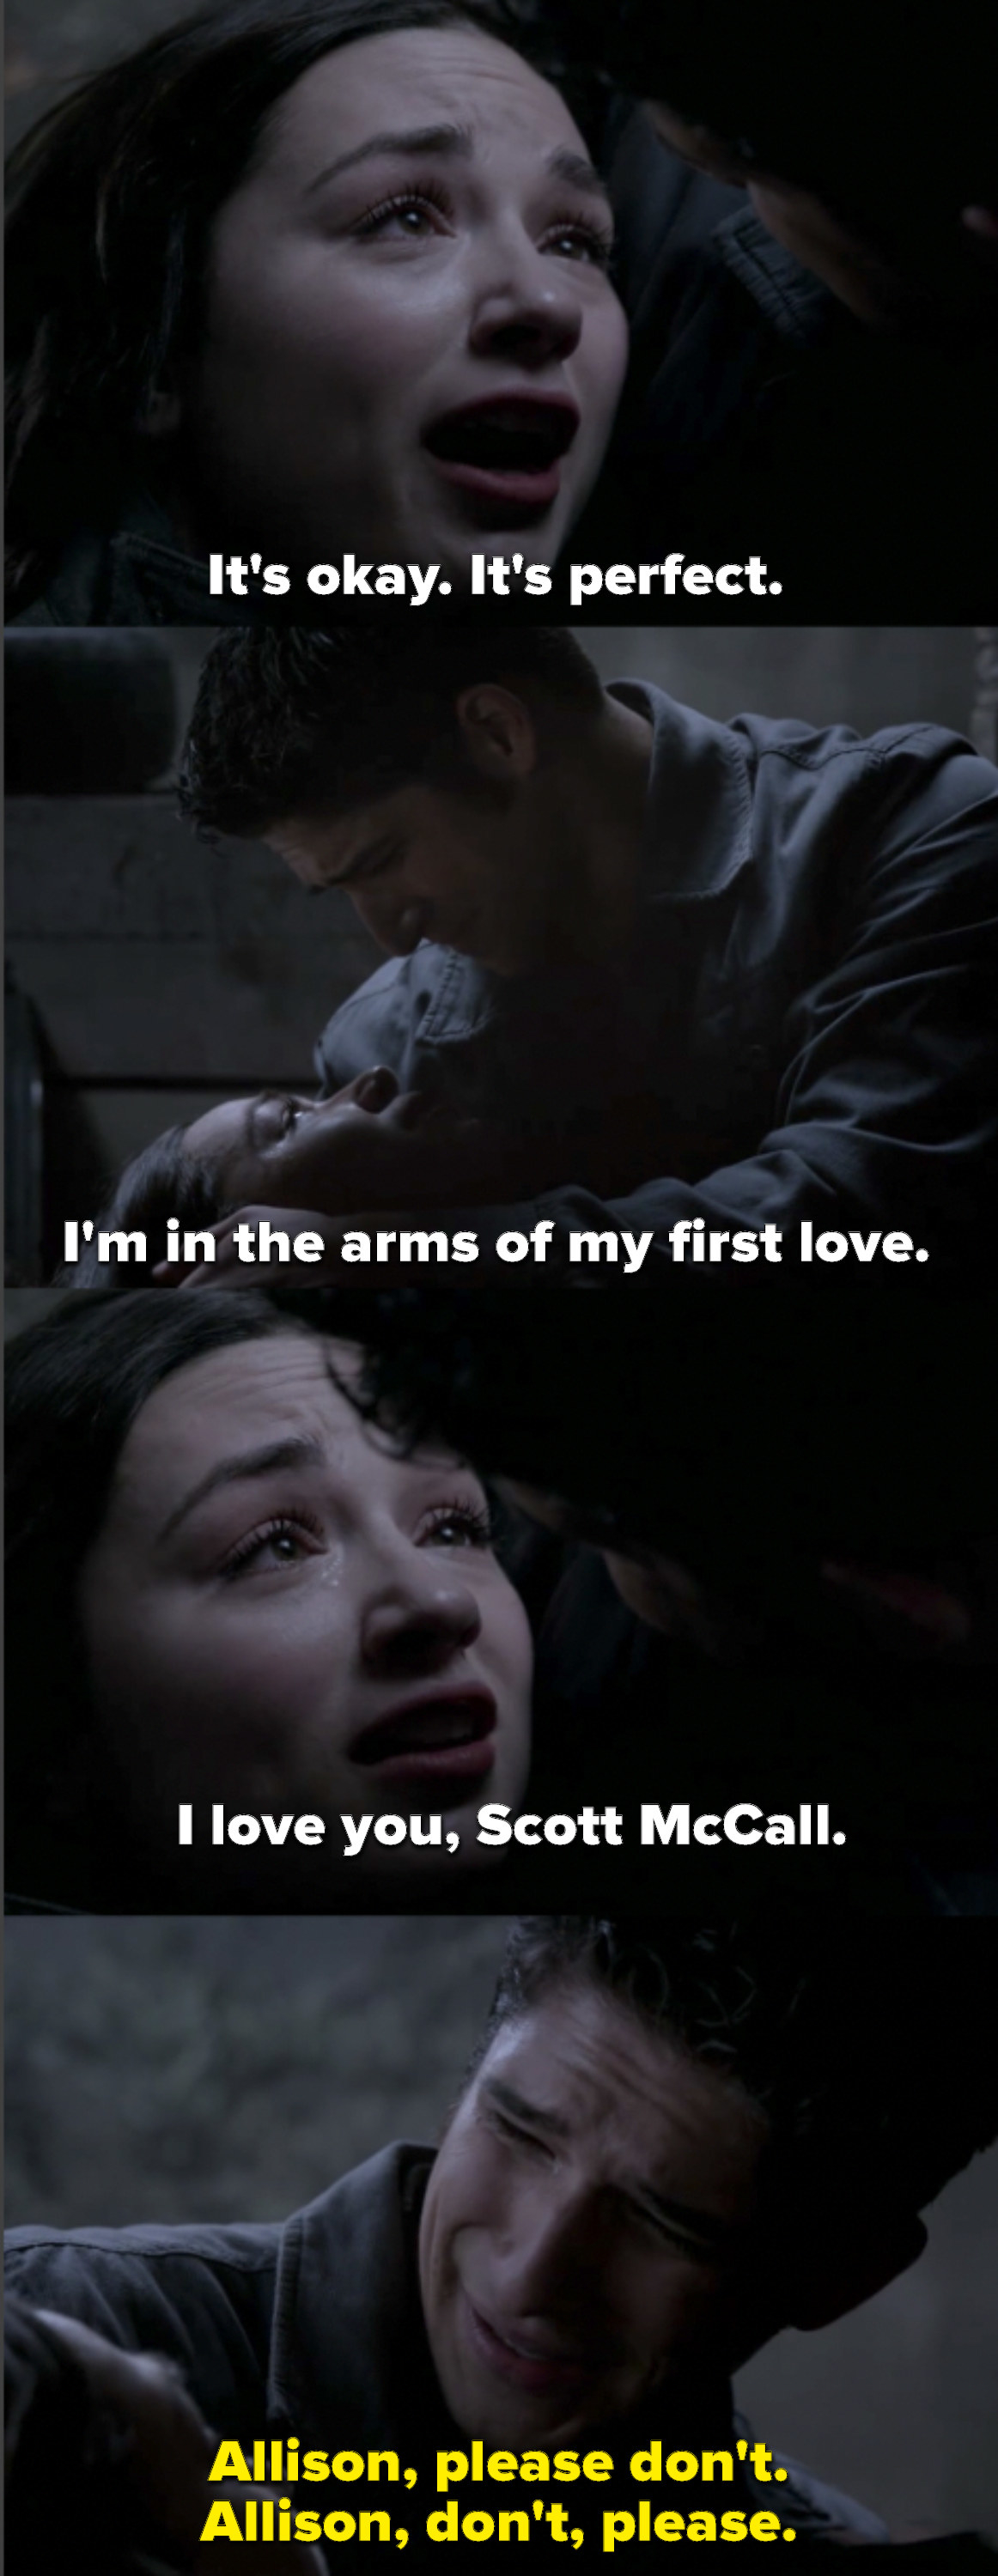 Allison says it's perfect, because she's in the arms of her first love, the person she'll always love. She says she loves Scott, and Scott begs her to stay with him